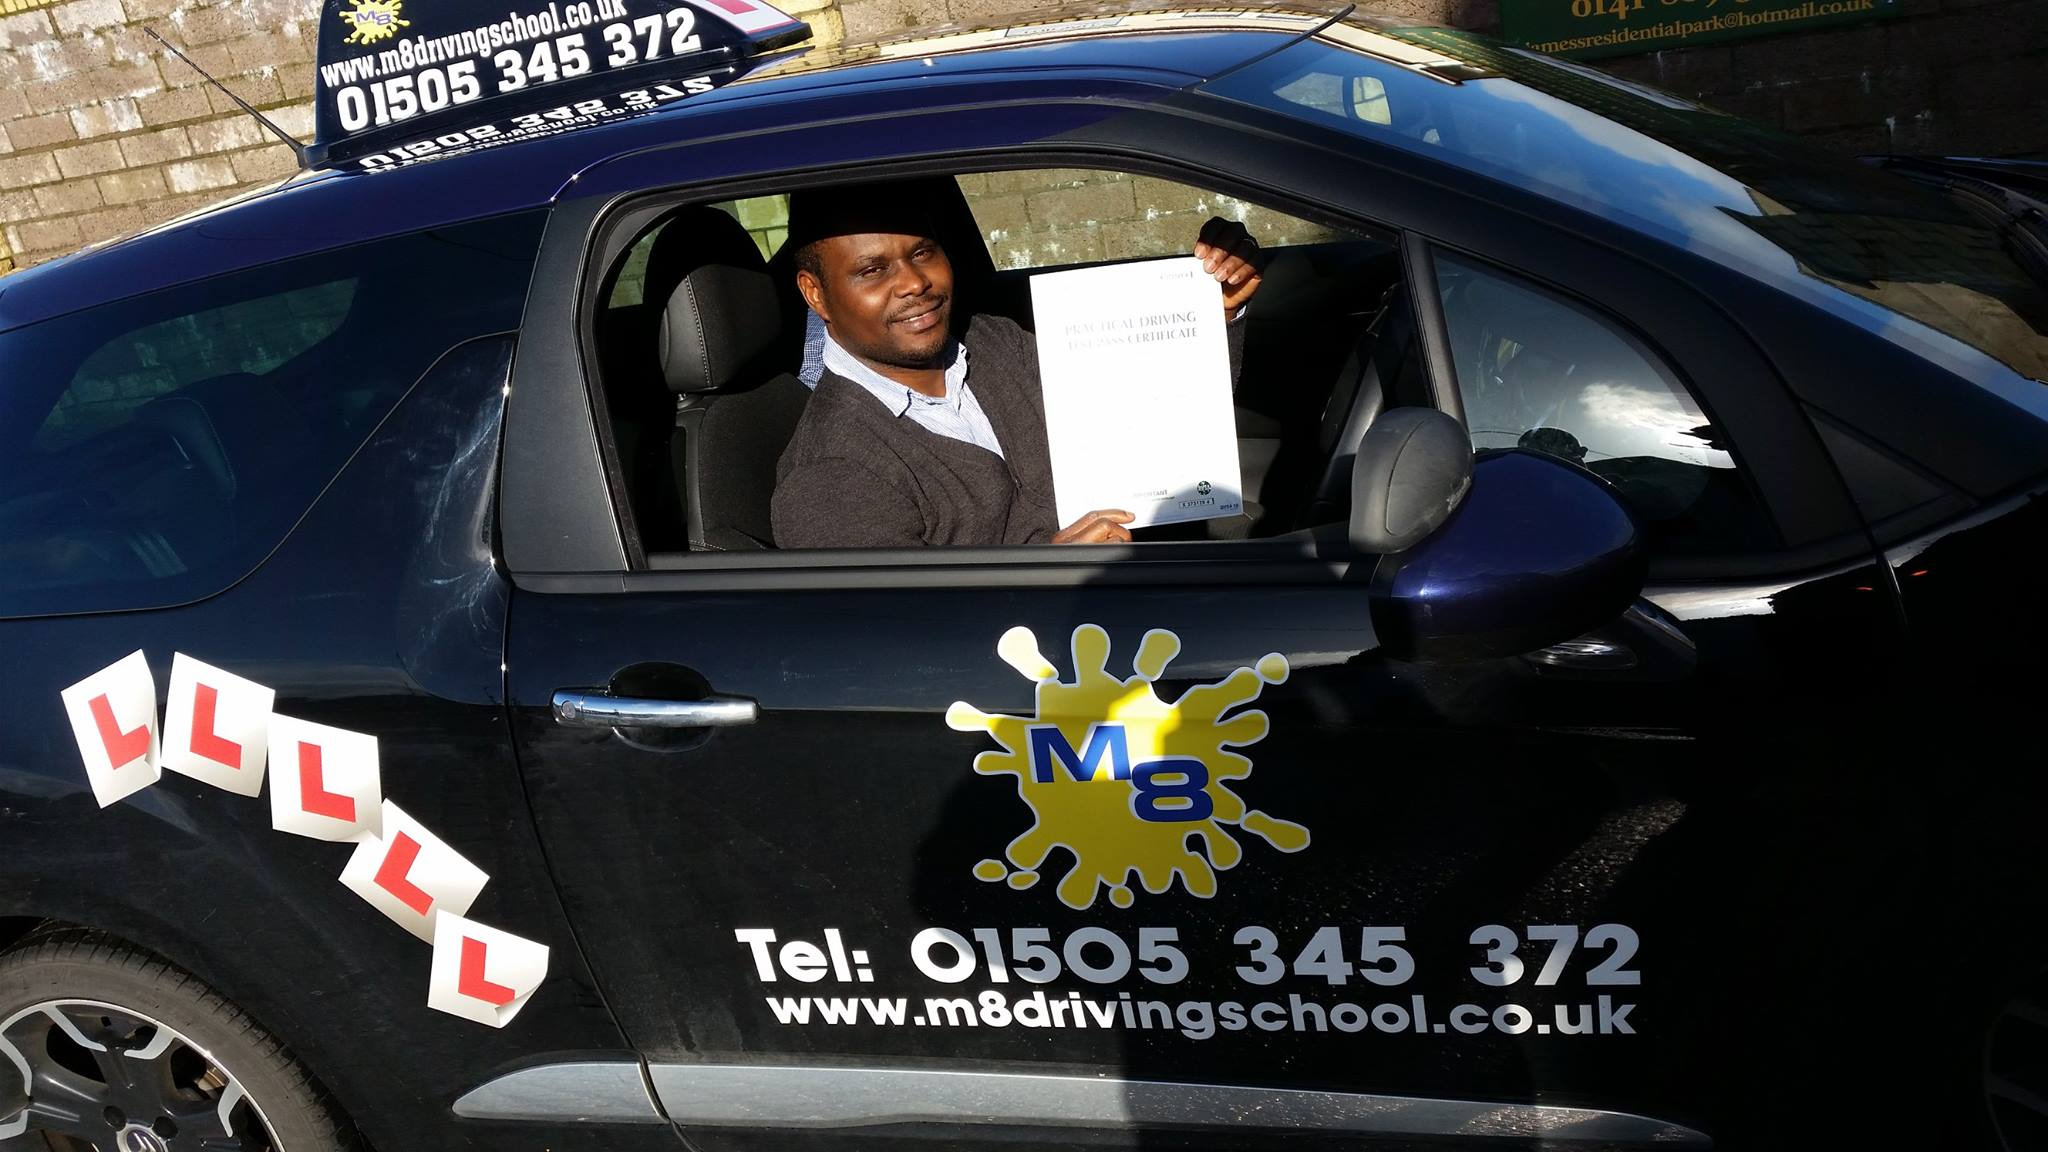 get your driving licence with quality Driving lessons Paisley with an experienced instructor